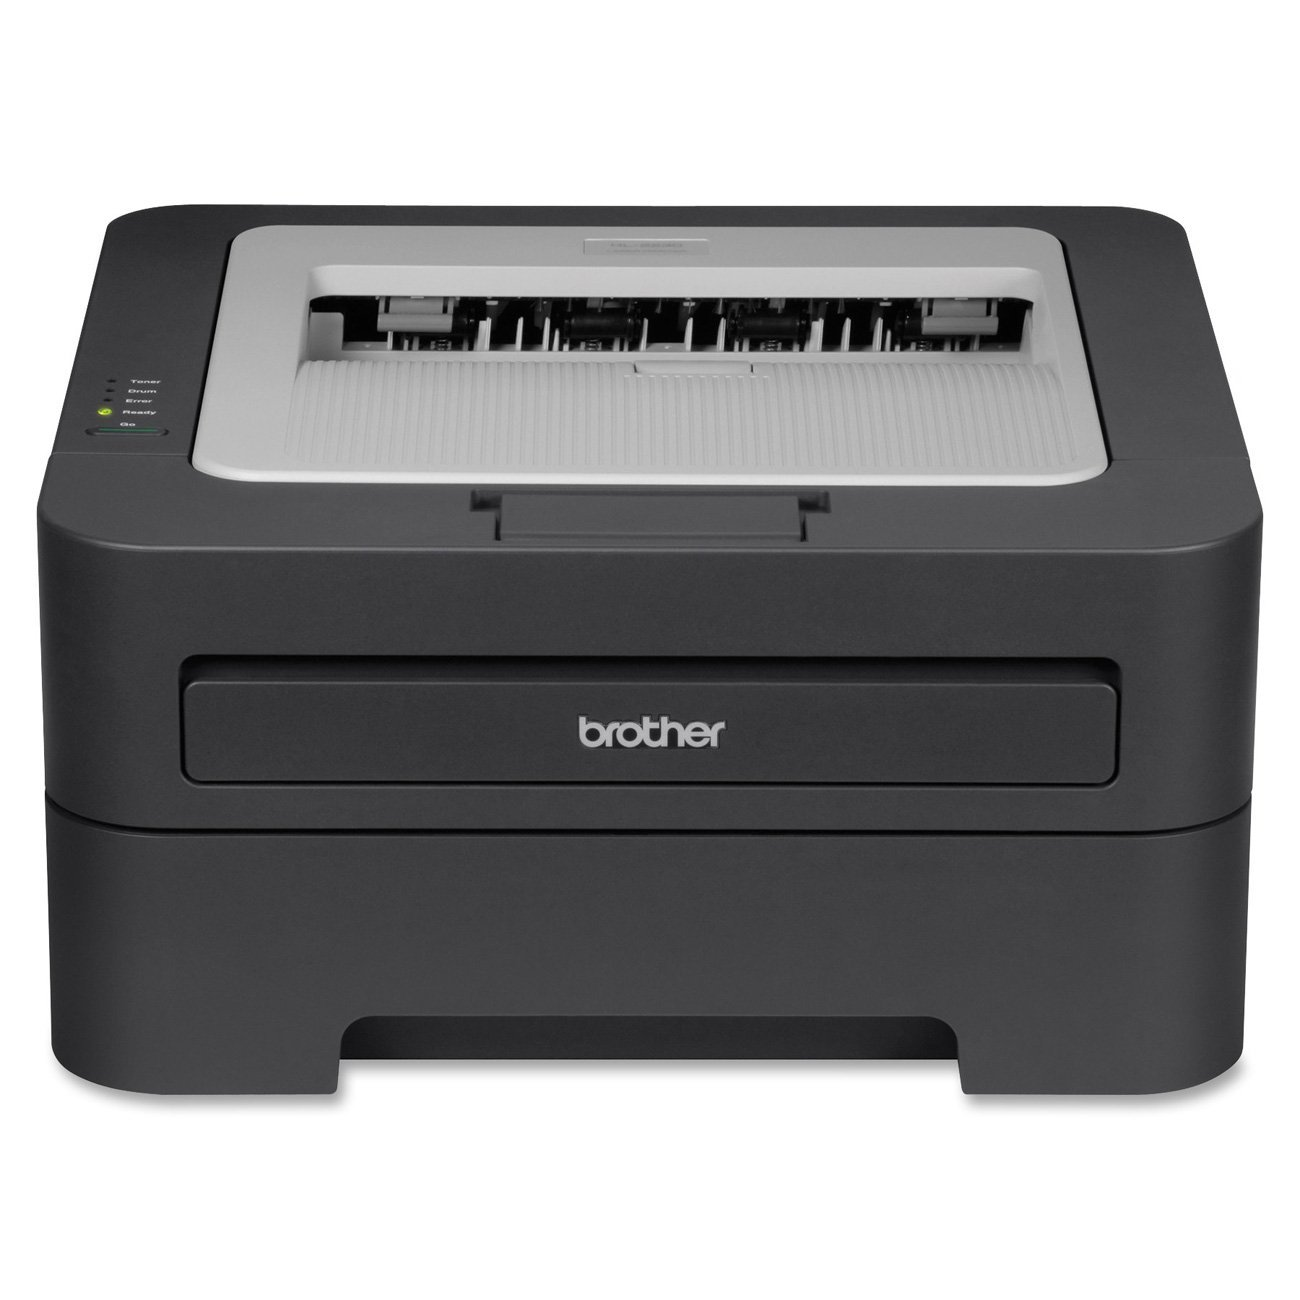 How To Download Printer Software On Mac